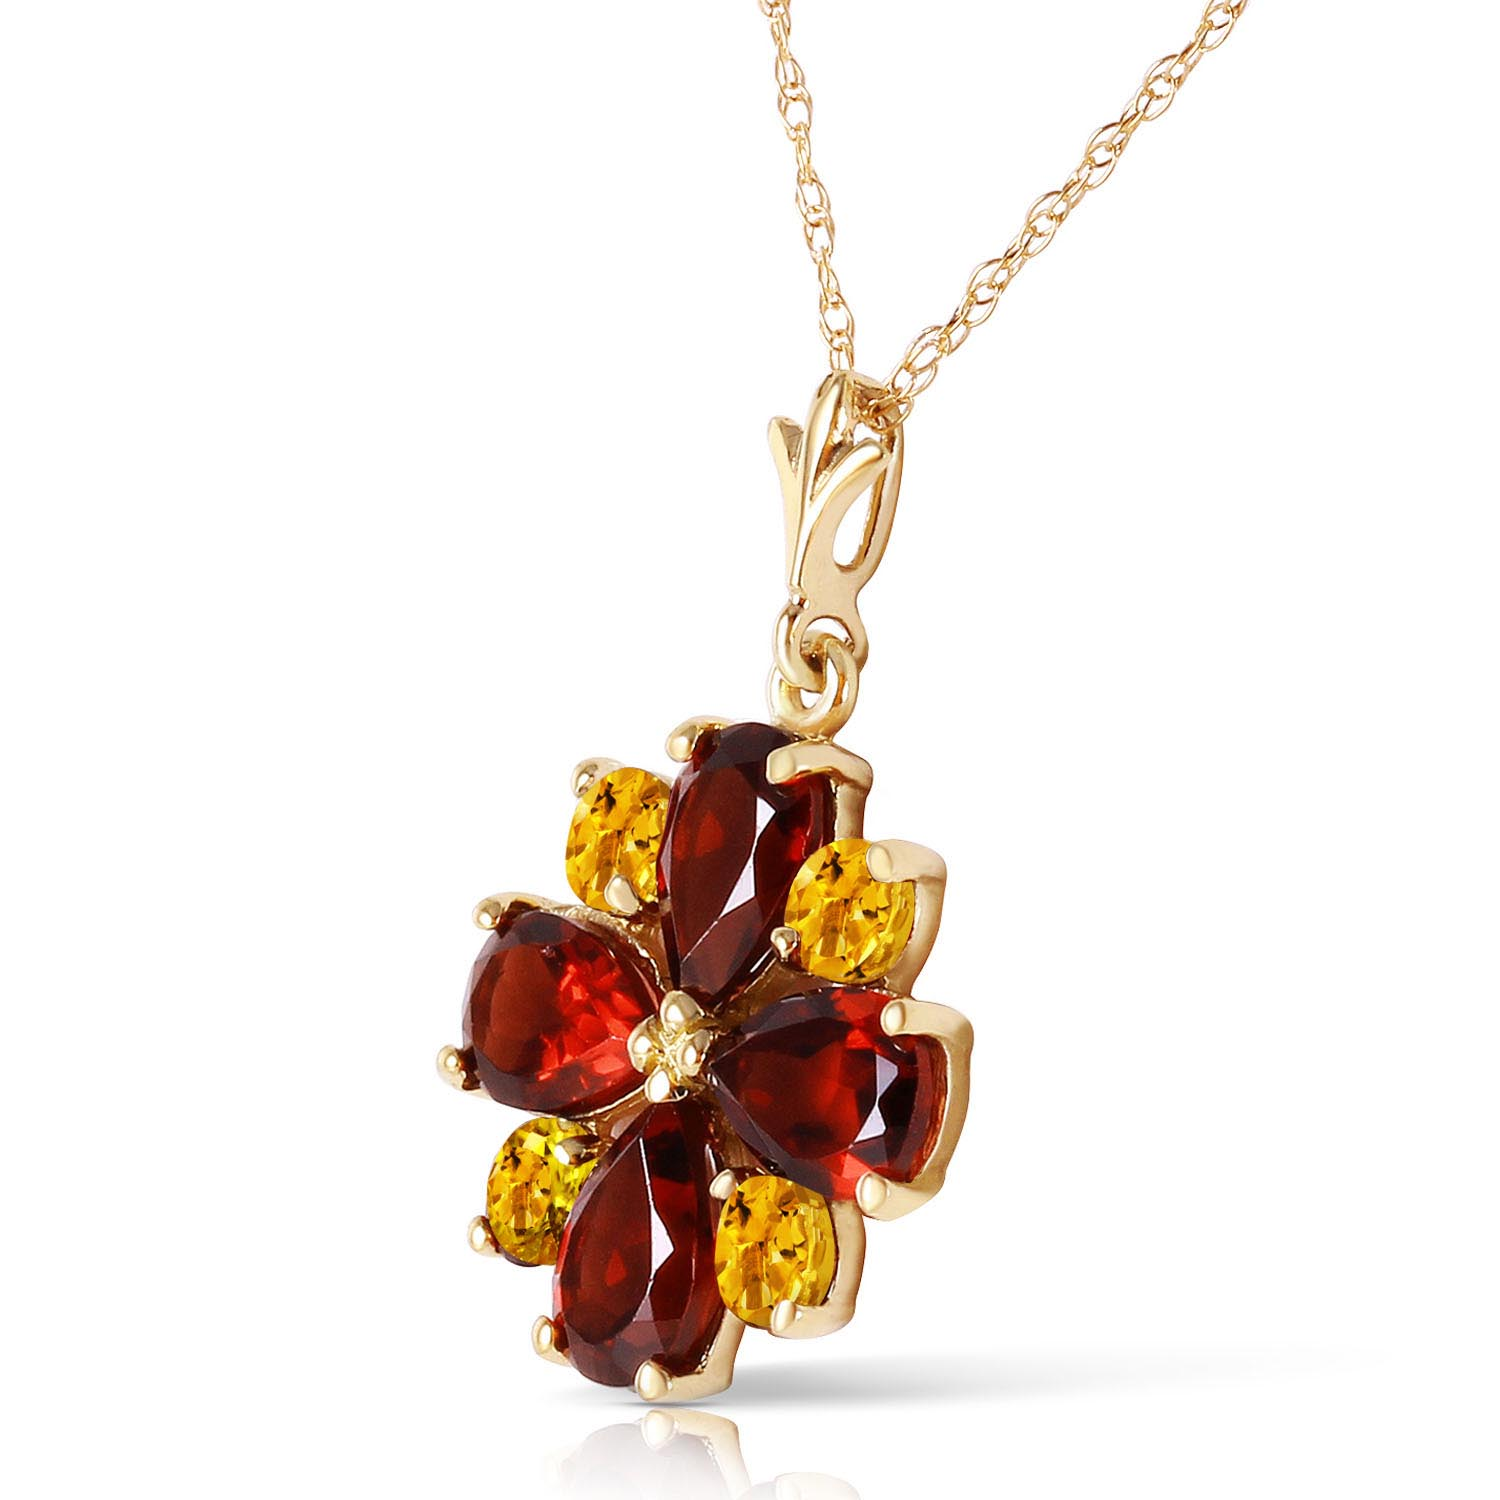 Garnet citrine sunflower pendant necklace in 9ct gold 2139y qp garnet citrine sunflower pendant necklace in 9ct gold aloadofball Gallery